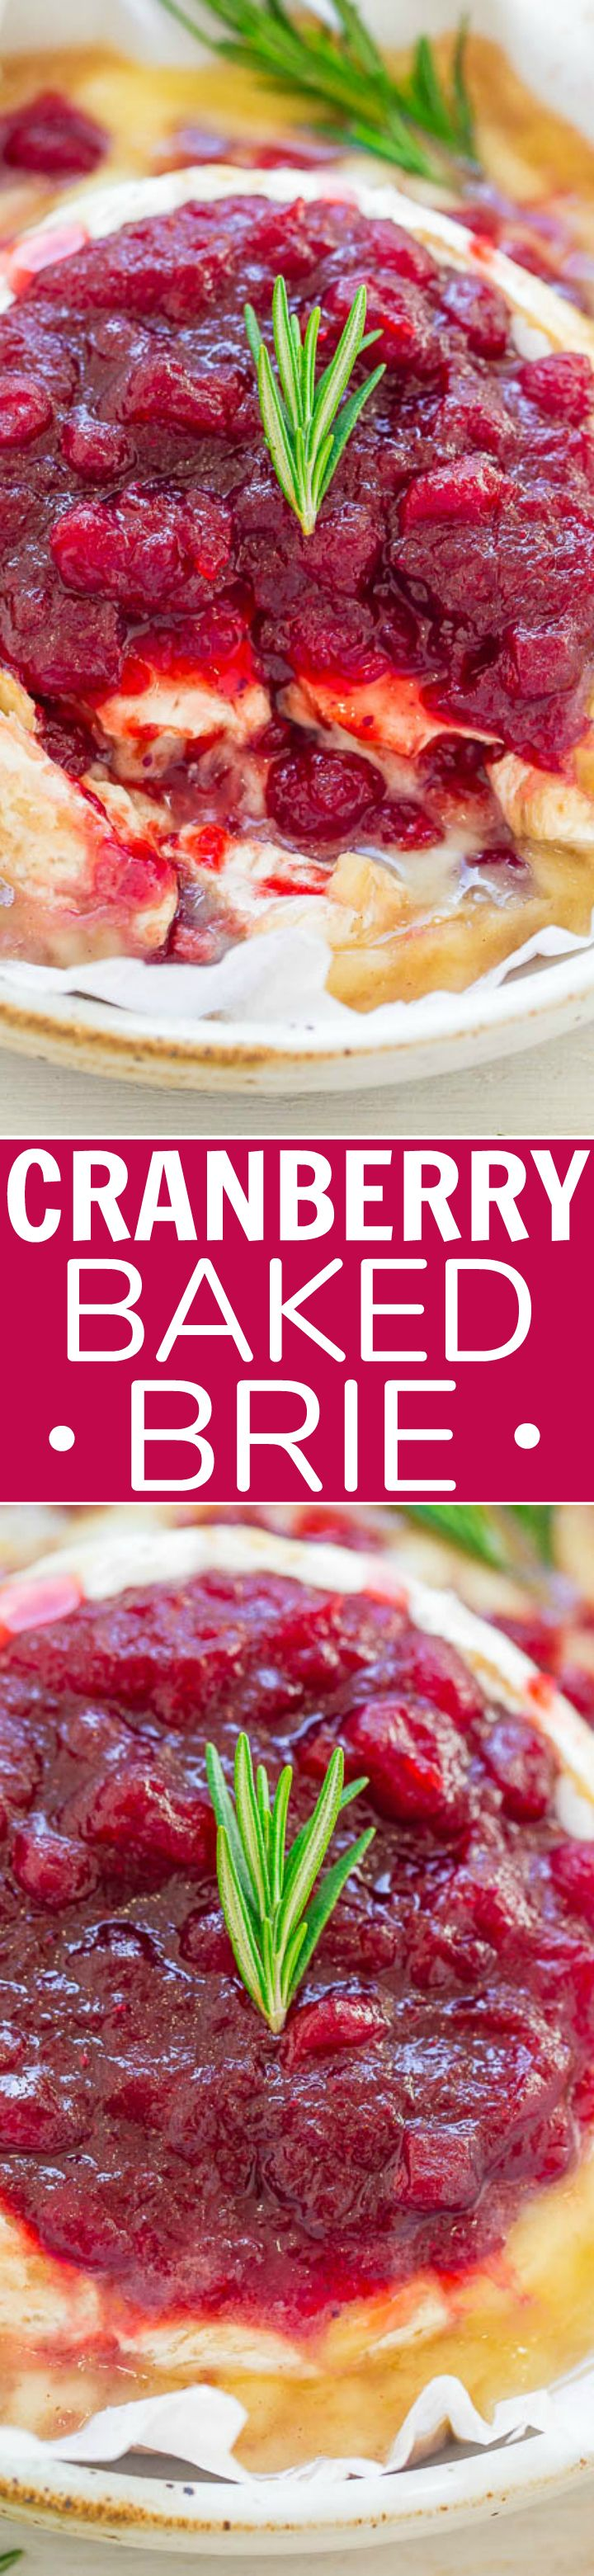 Cranberry Baked Brie - EASY, 15-minute appetizer that's filled AND topped with richly spiced orange-scented cranberry sauce!! Perfect for holiday entertaining! Salty, tart-yet-sweet, and IRRESISTIBLE!!